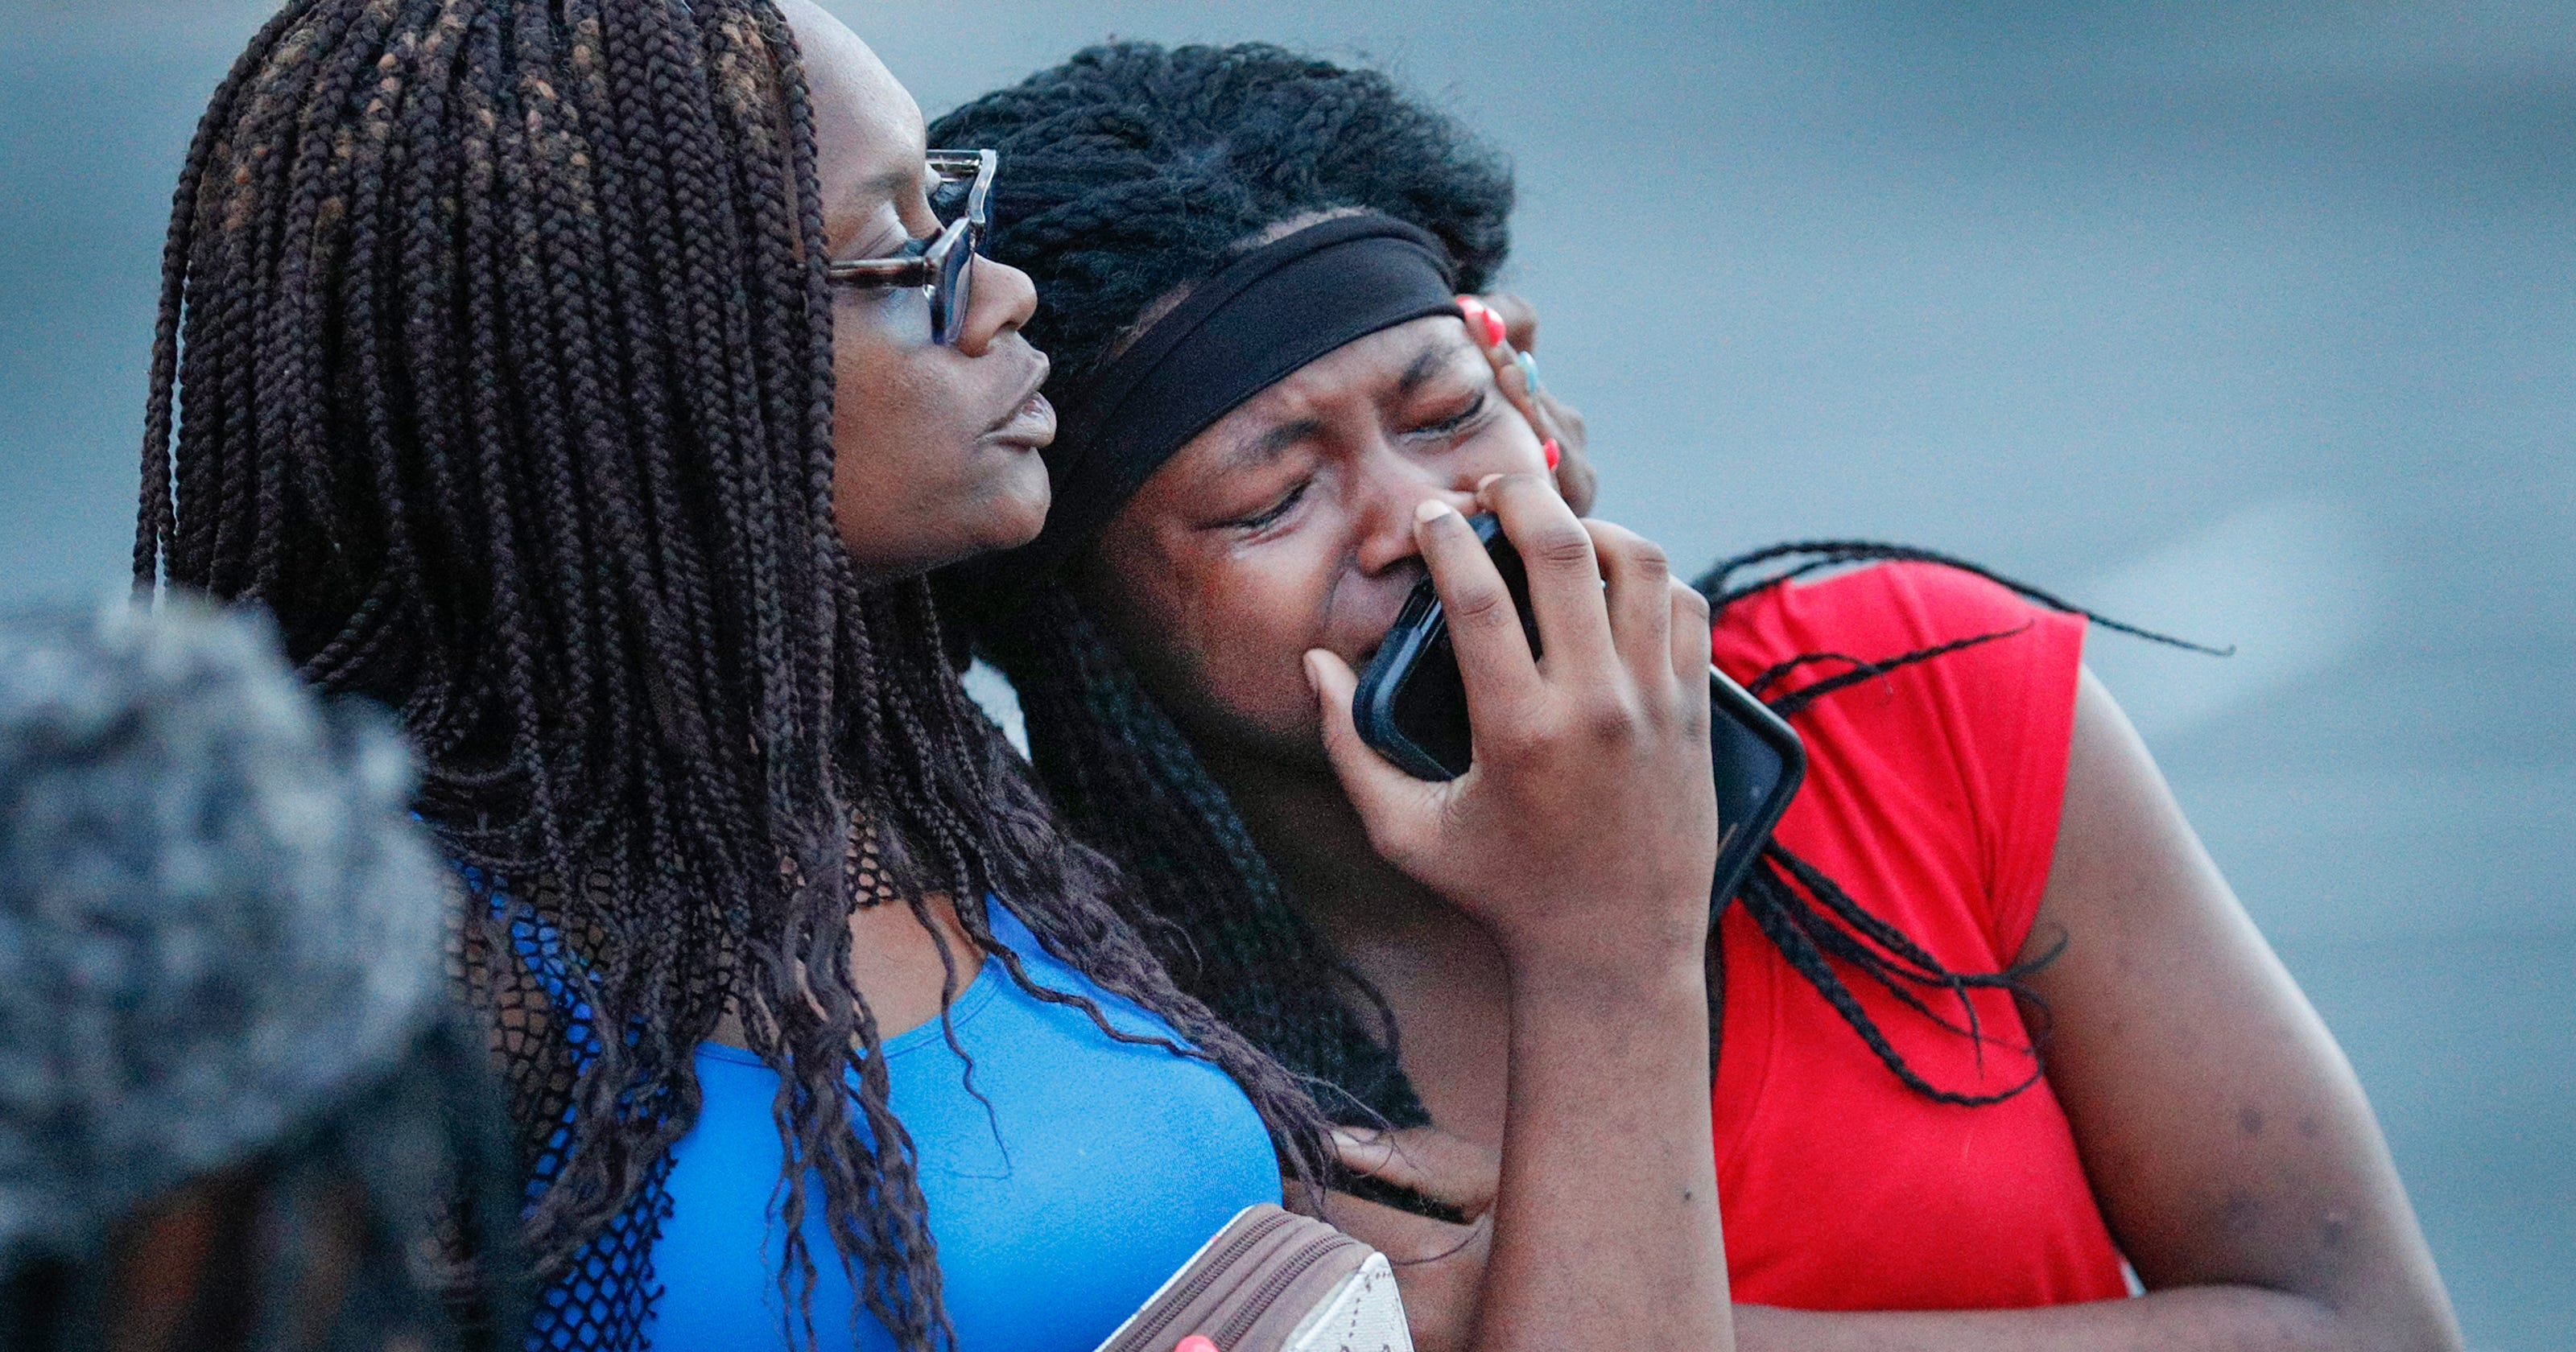 Indianapolis crime: Addressing the issue of youth gun violence